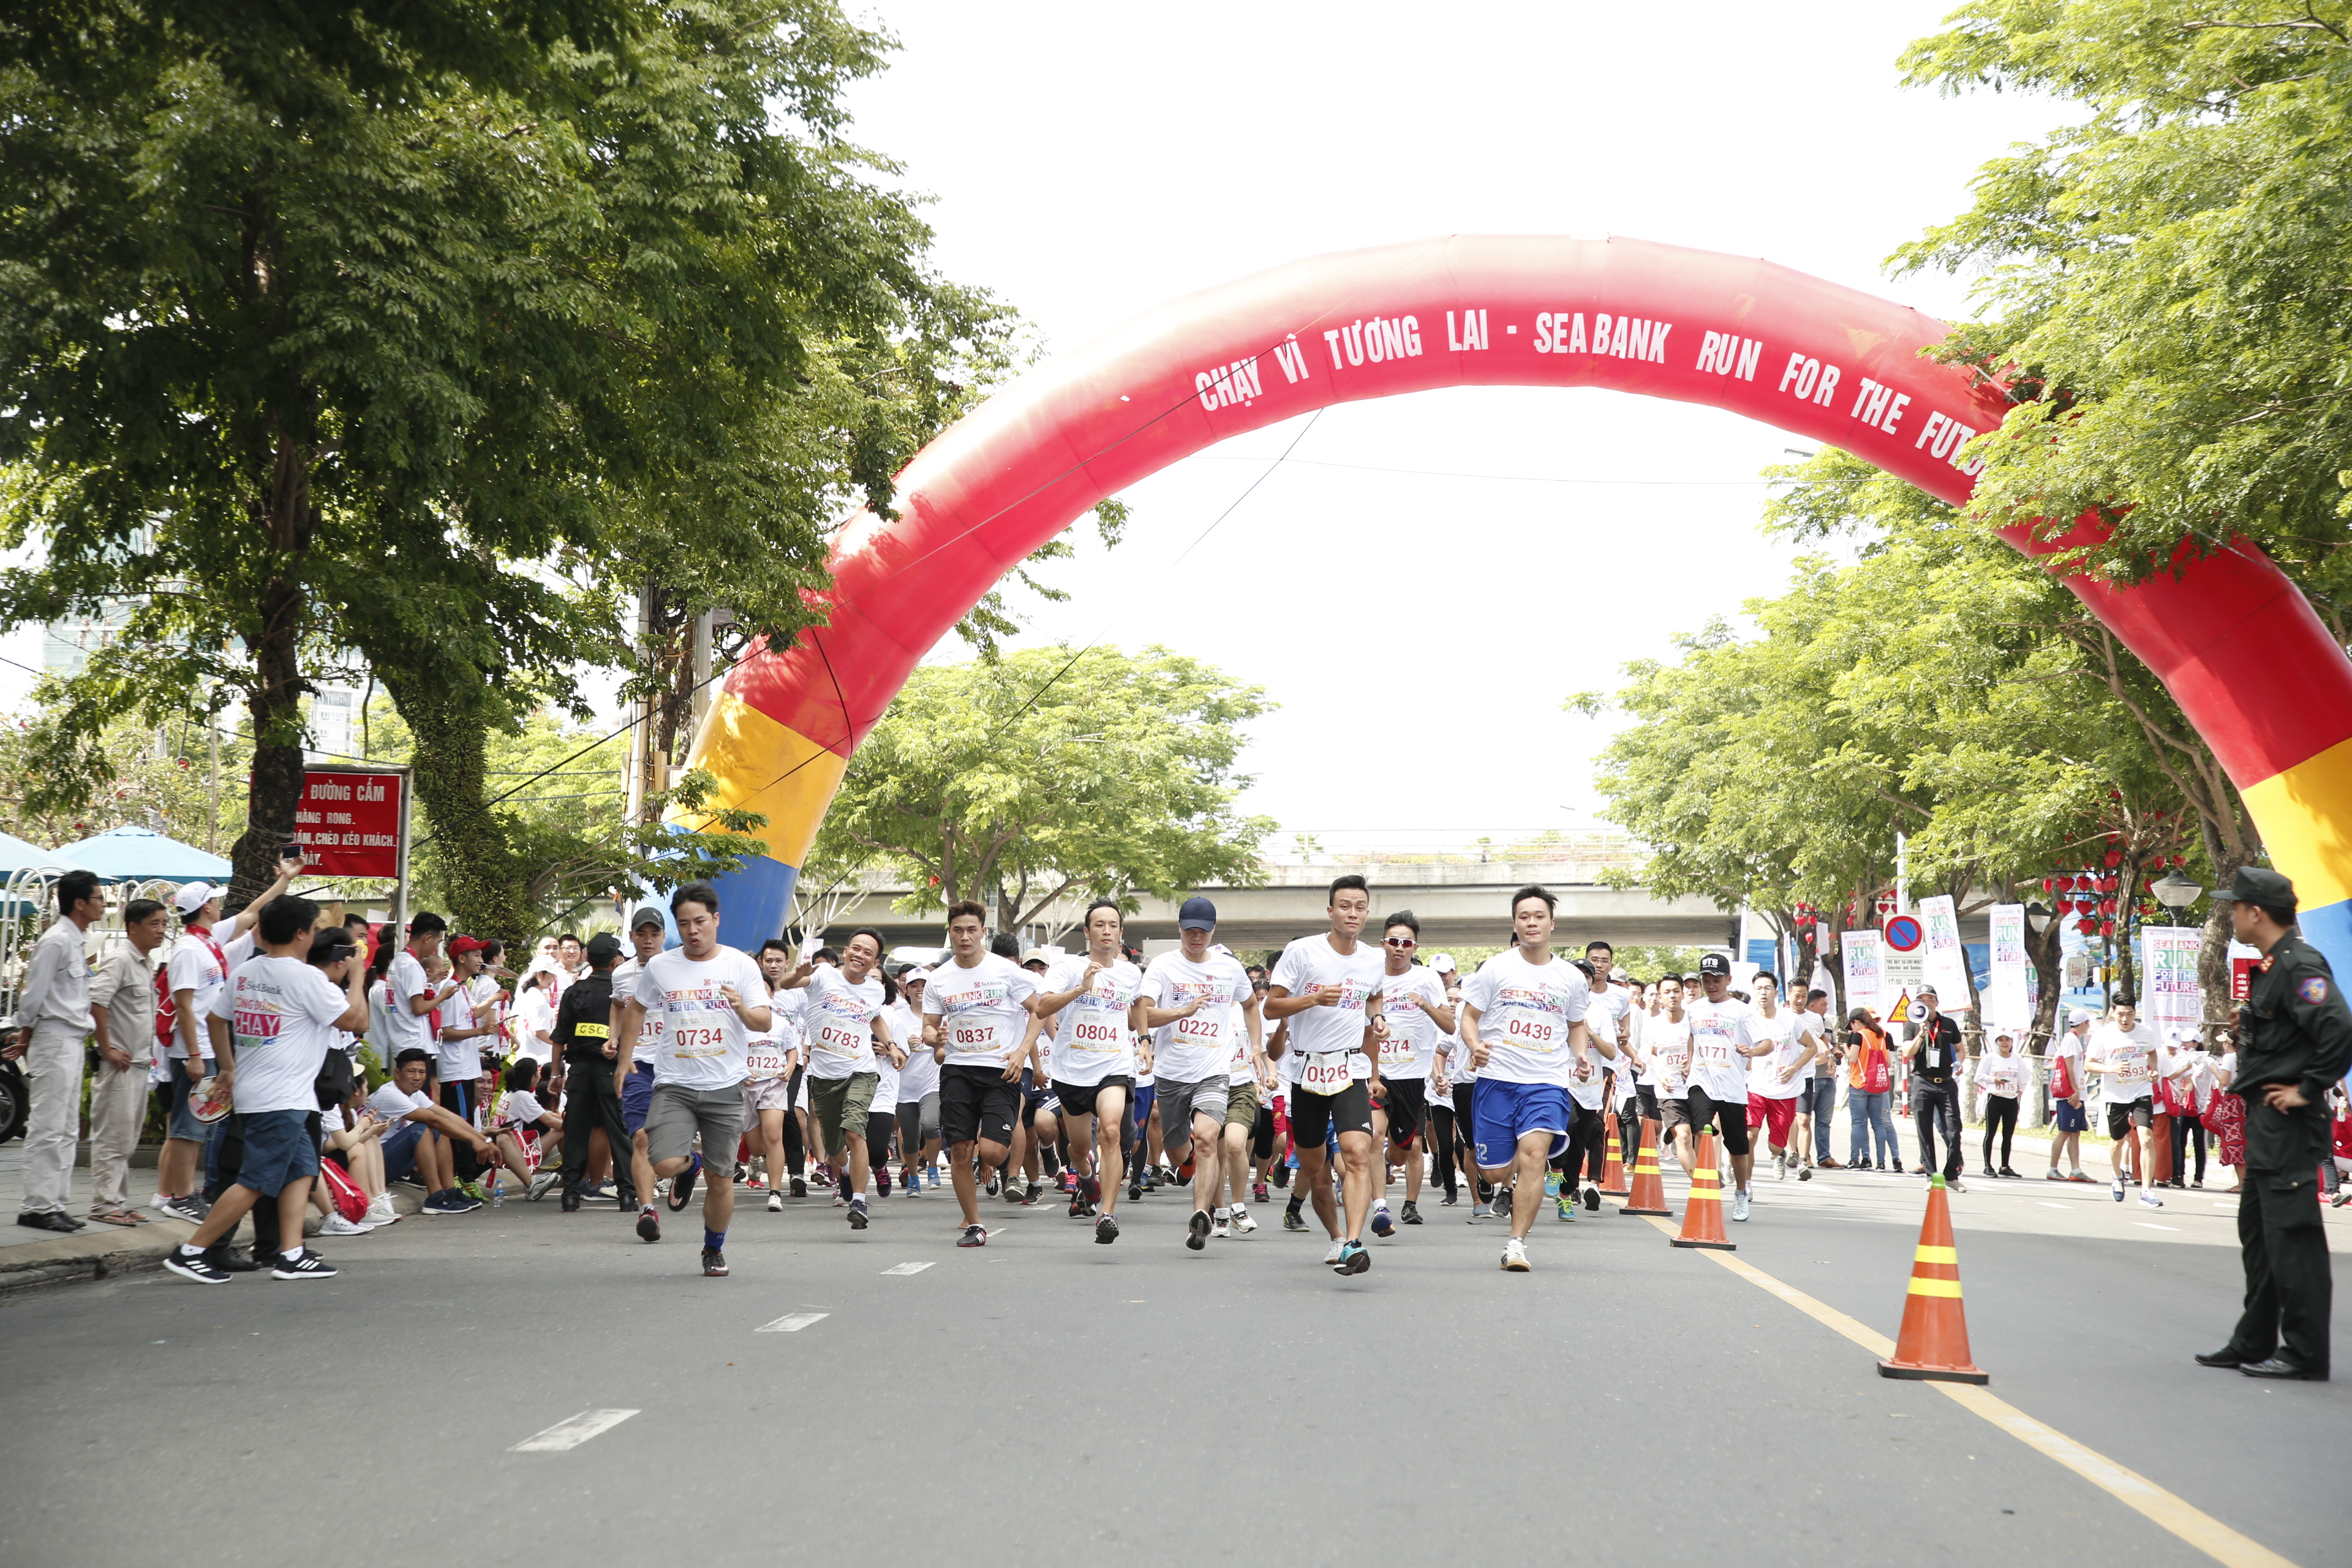 cong dong chay vi tuong lai seabank run for the future 2019